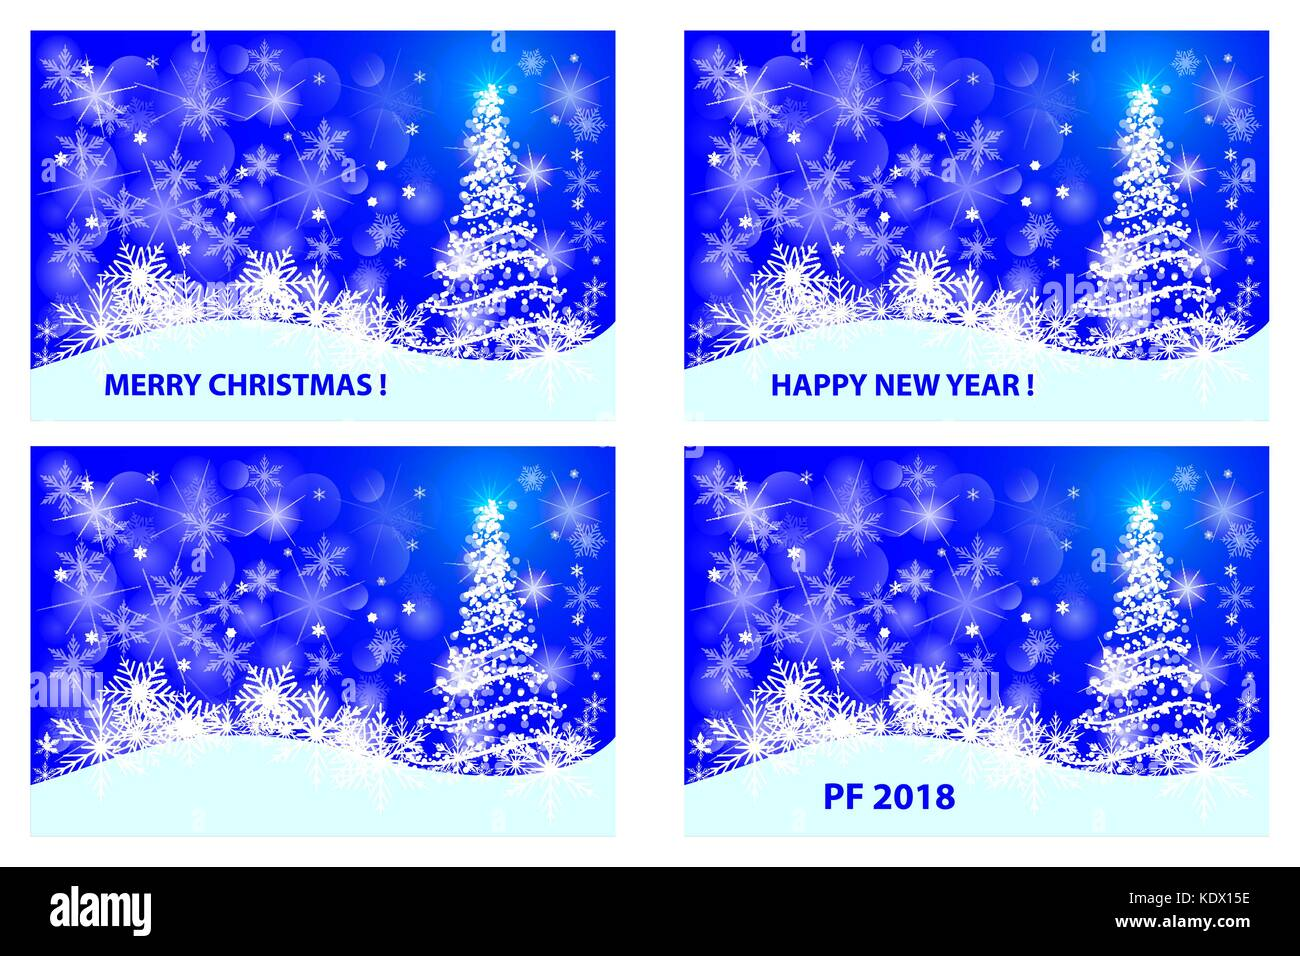 merry christmas happy new year pf 2018 christmas card white and blue vector set